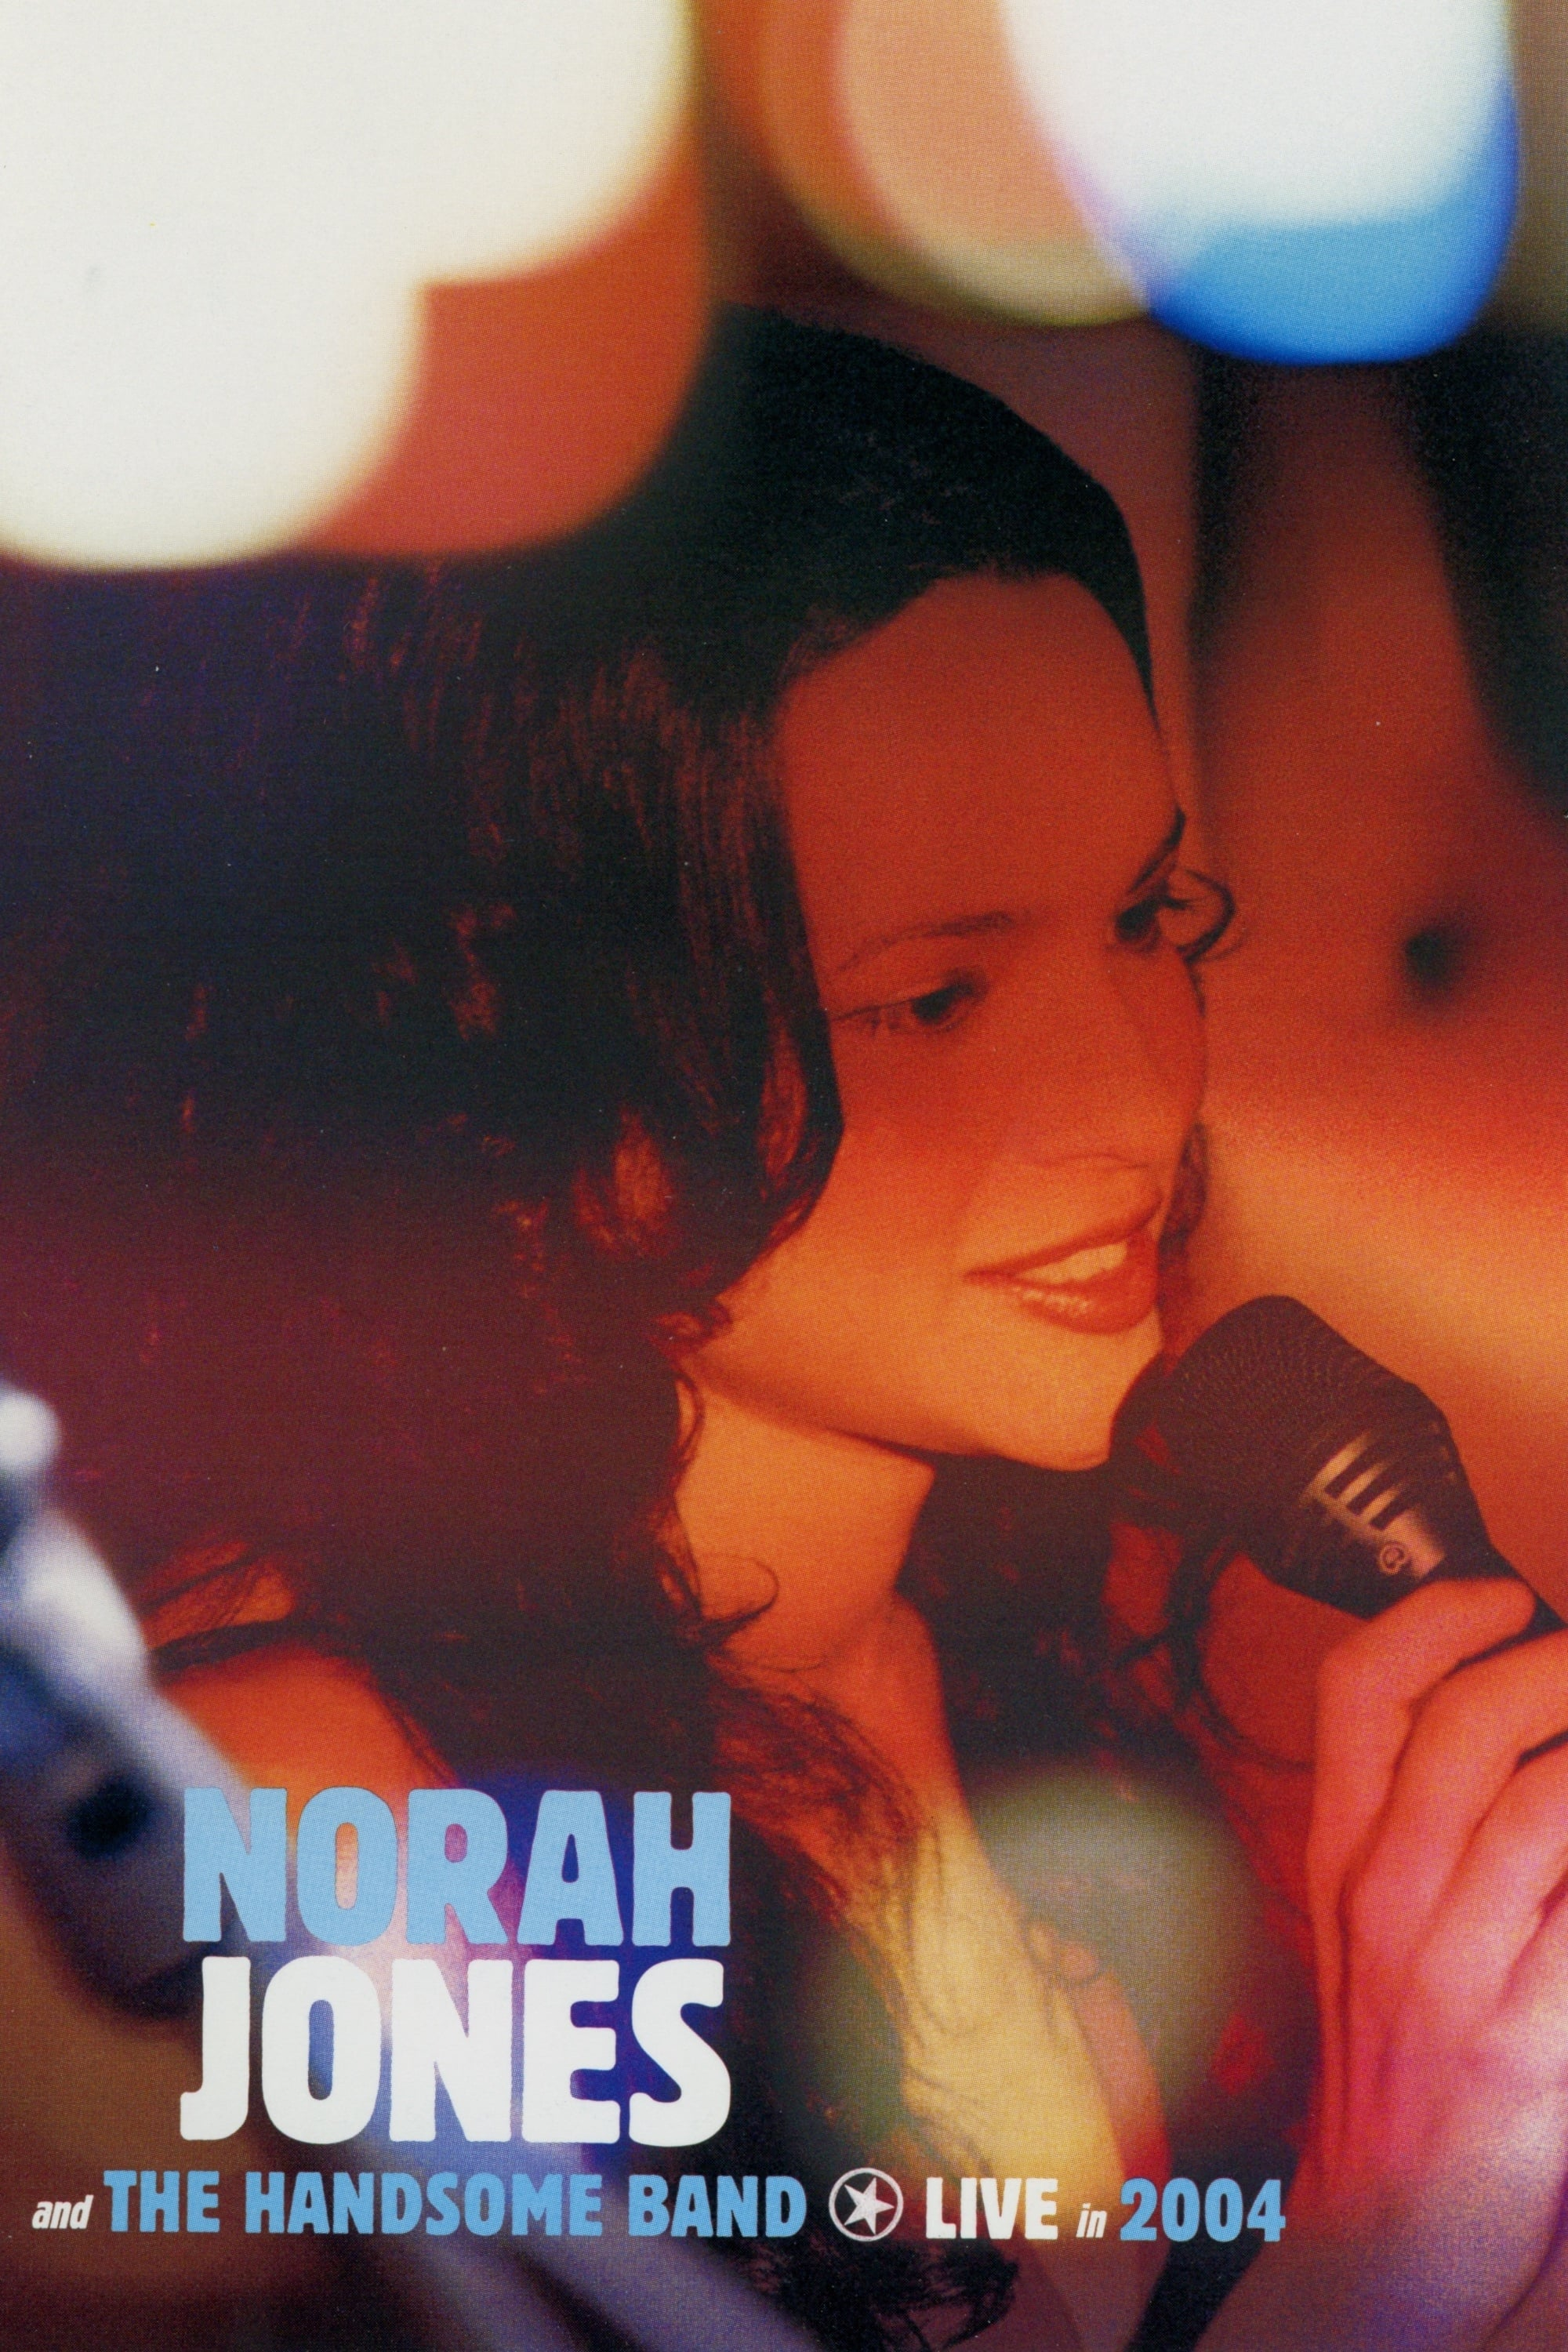 Norah Jones and The Handsome Band: Live in 2004 (2004)